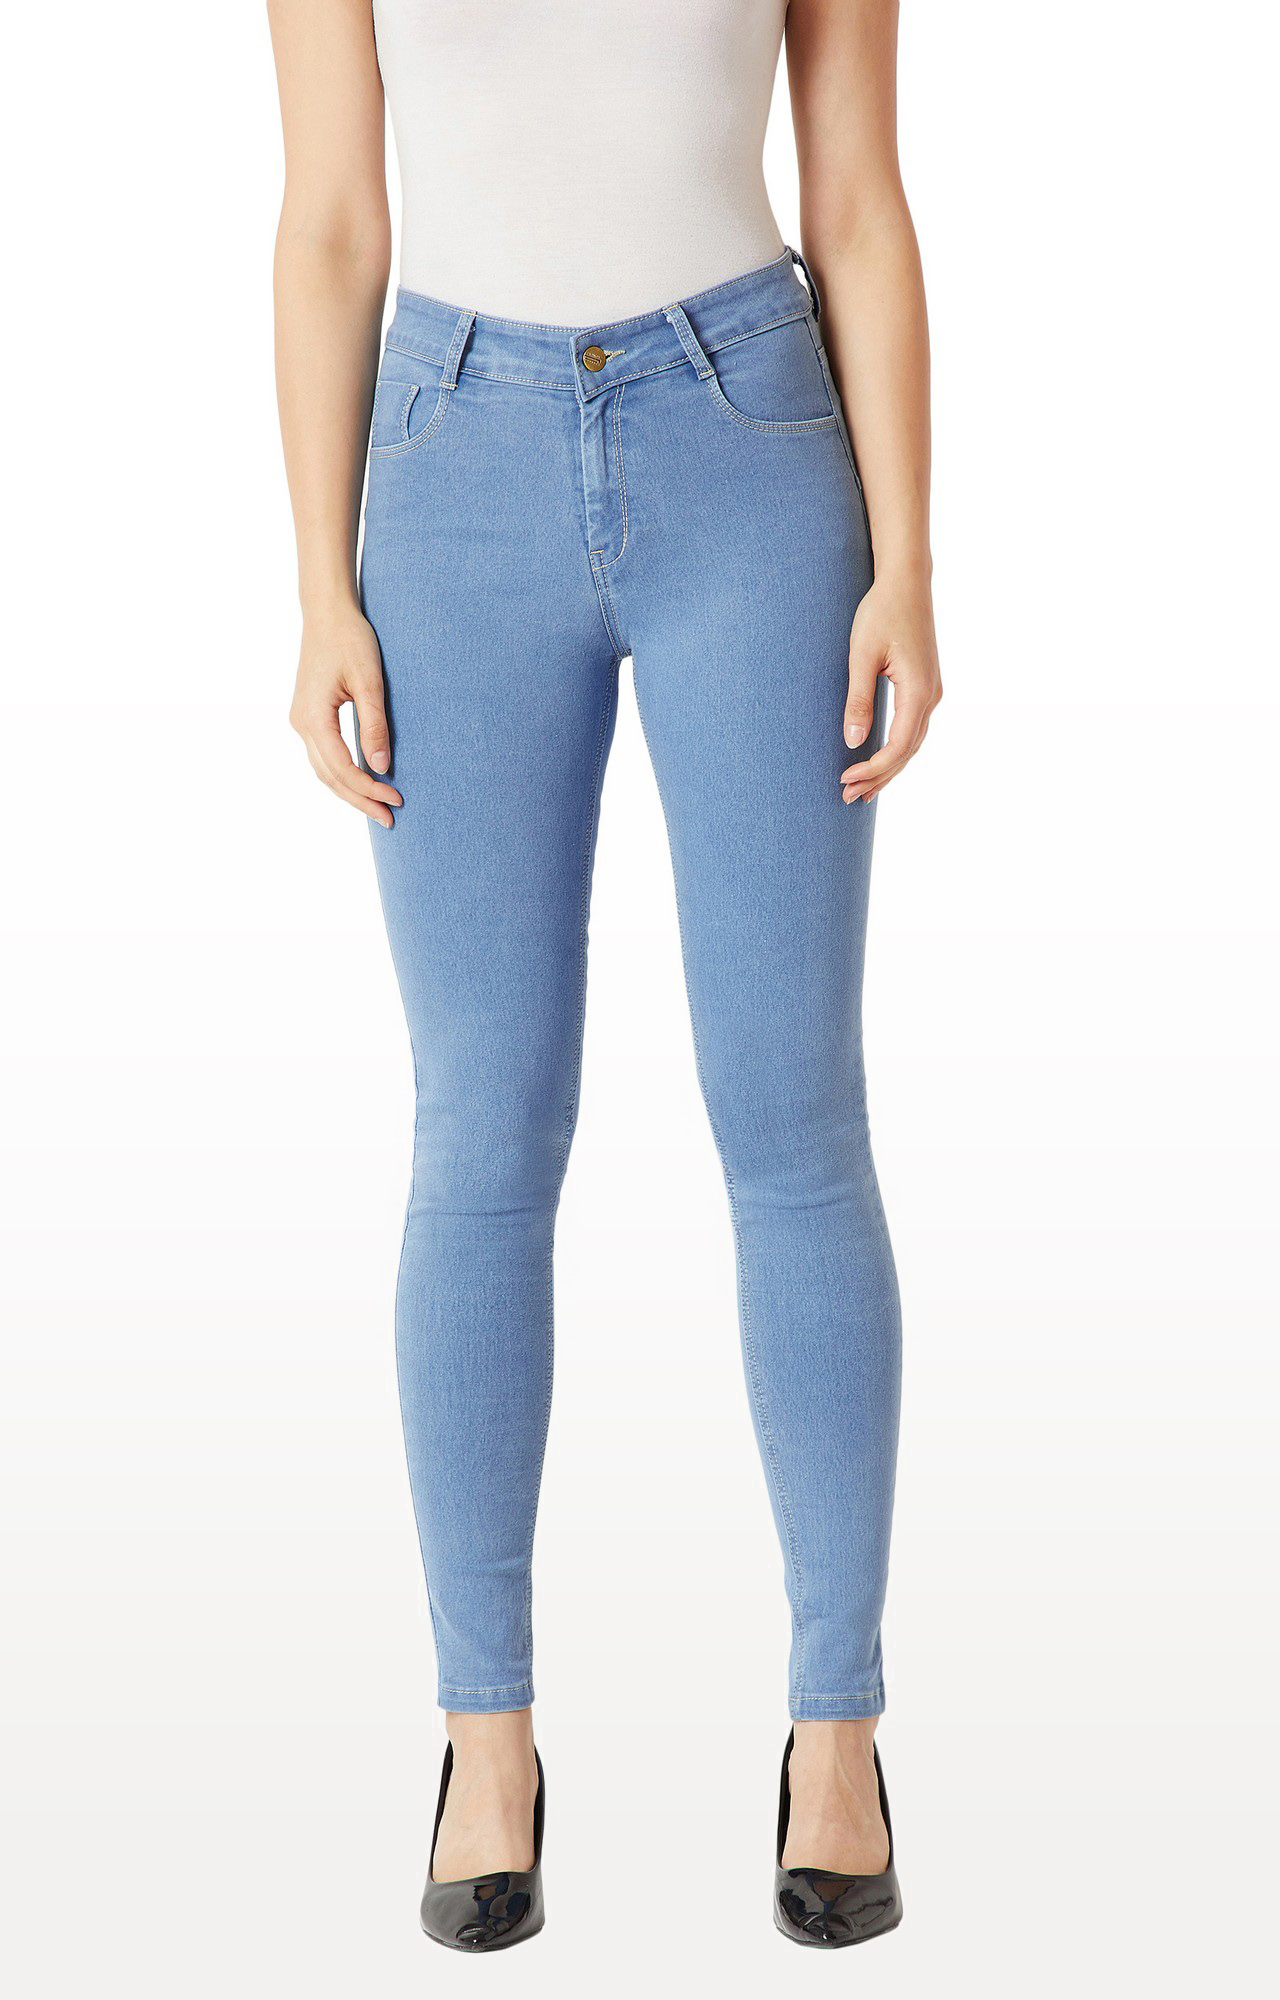 MISS CHASE   Blue Solid Mid Rise Clean Look Stretchable Jeans